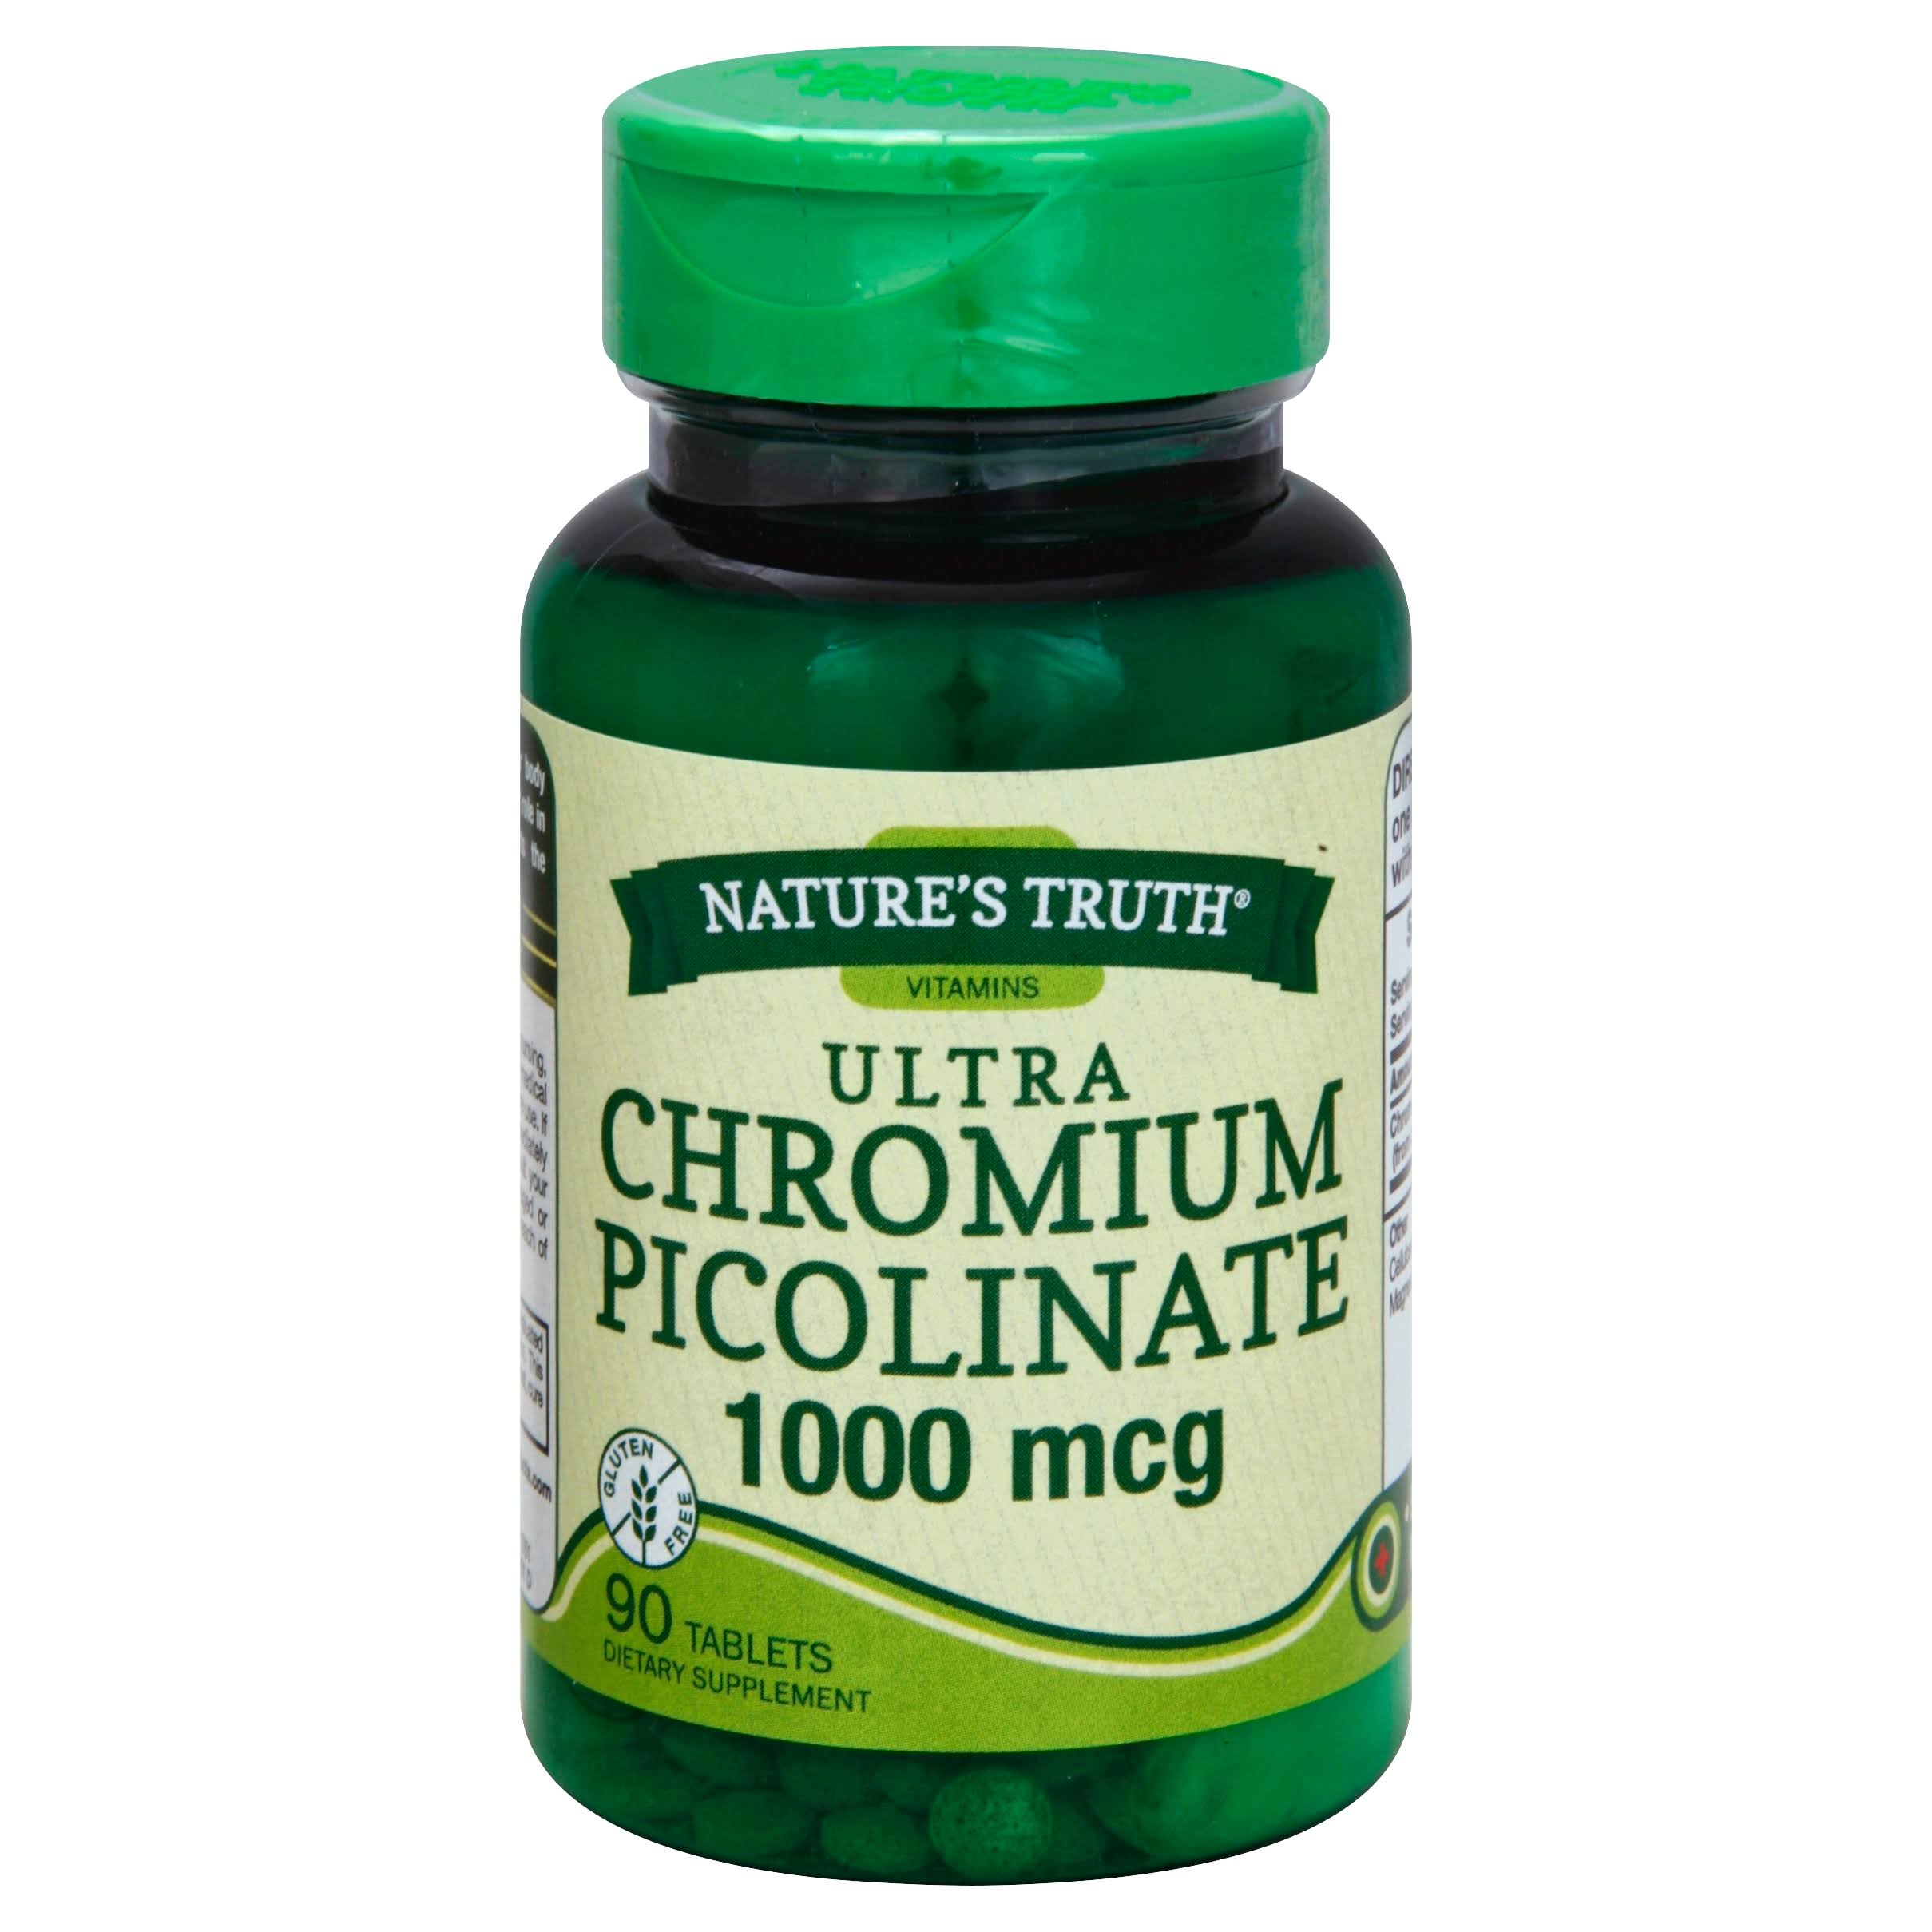 Nature's Truth Chromium Picolinate Dietary Supplement - 1000mcg, 90 Capsules